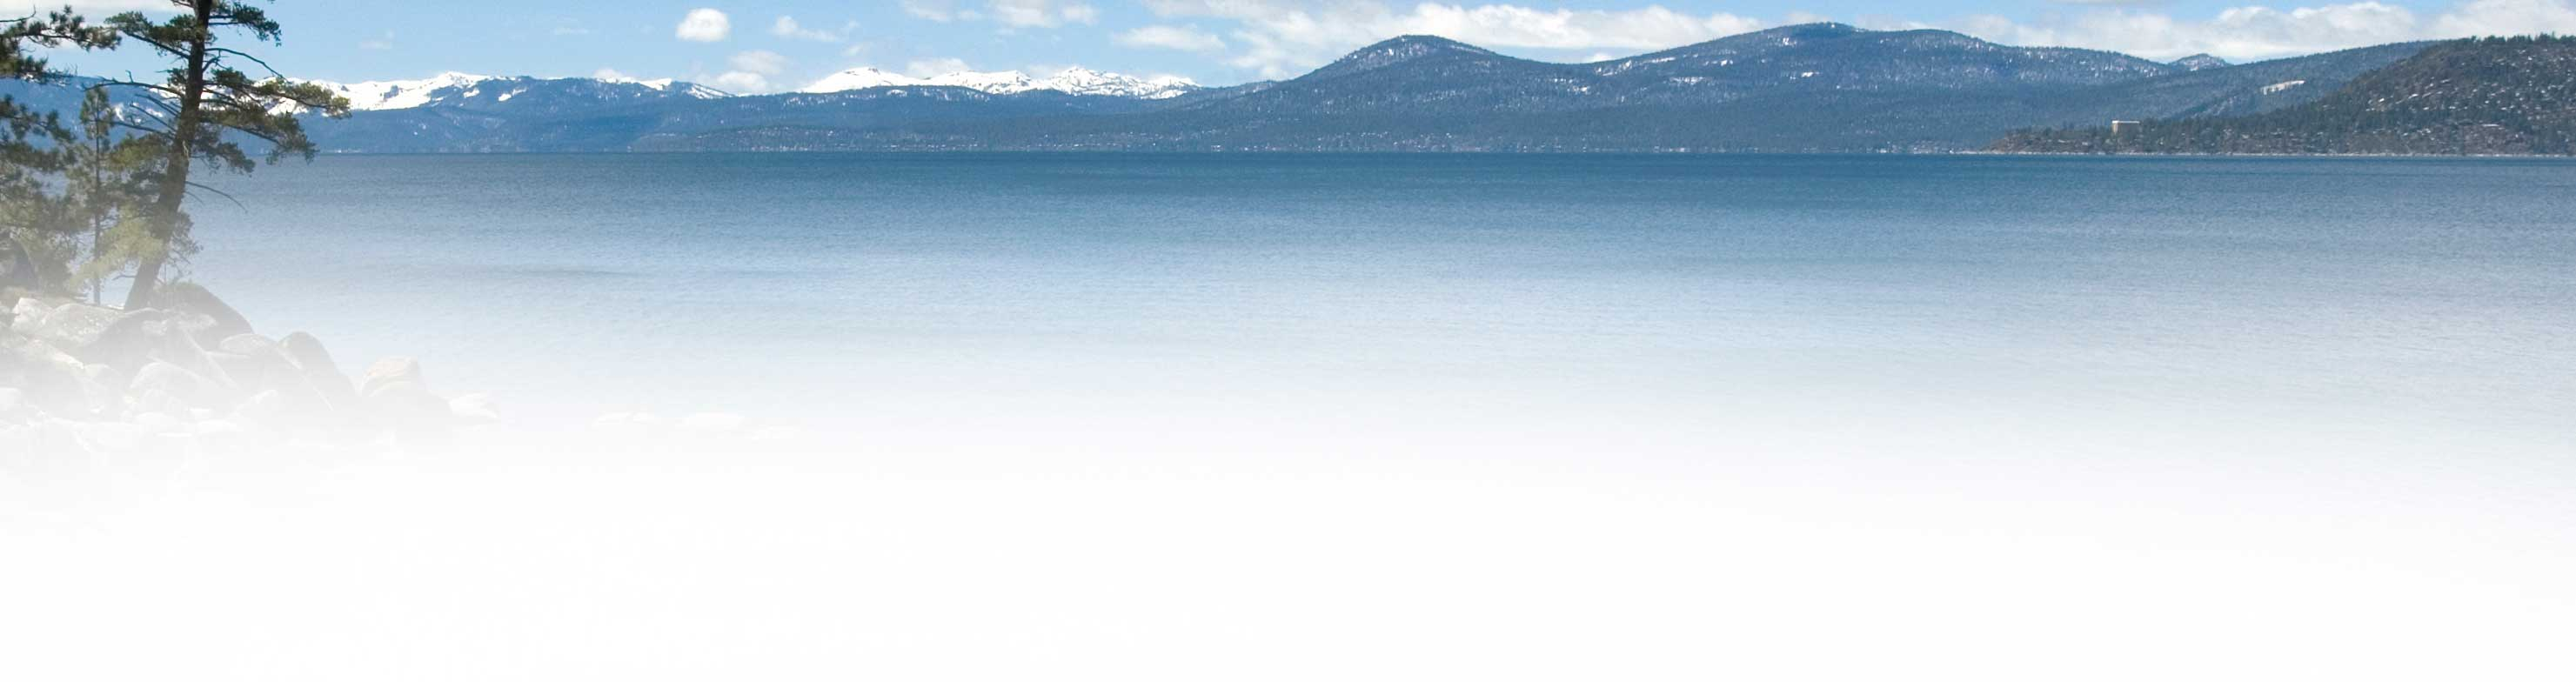 Lake Tahoe image for providers